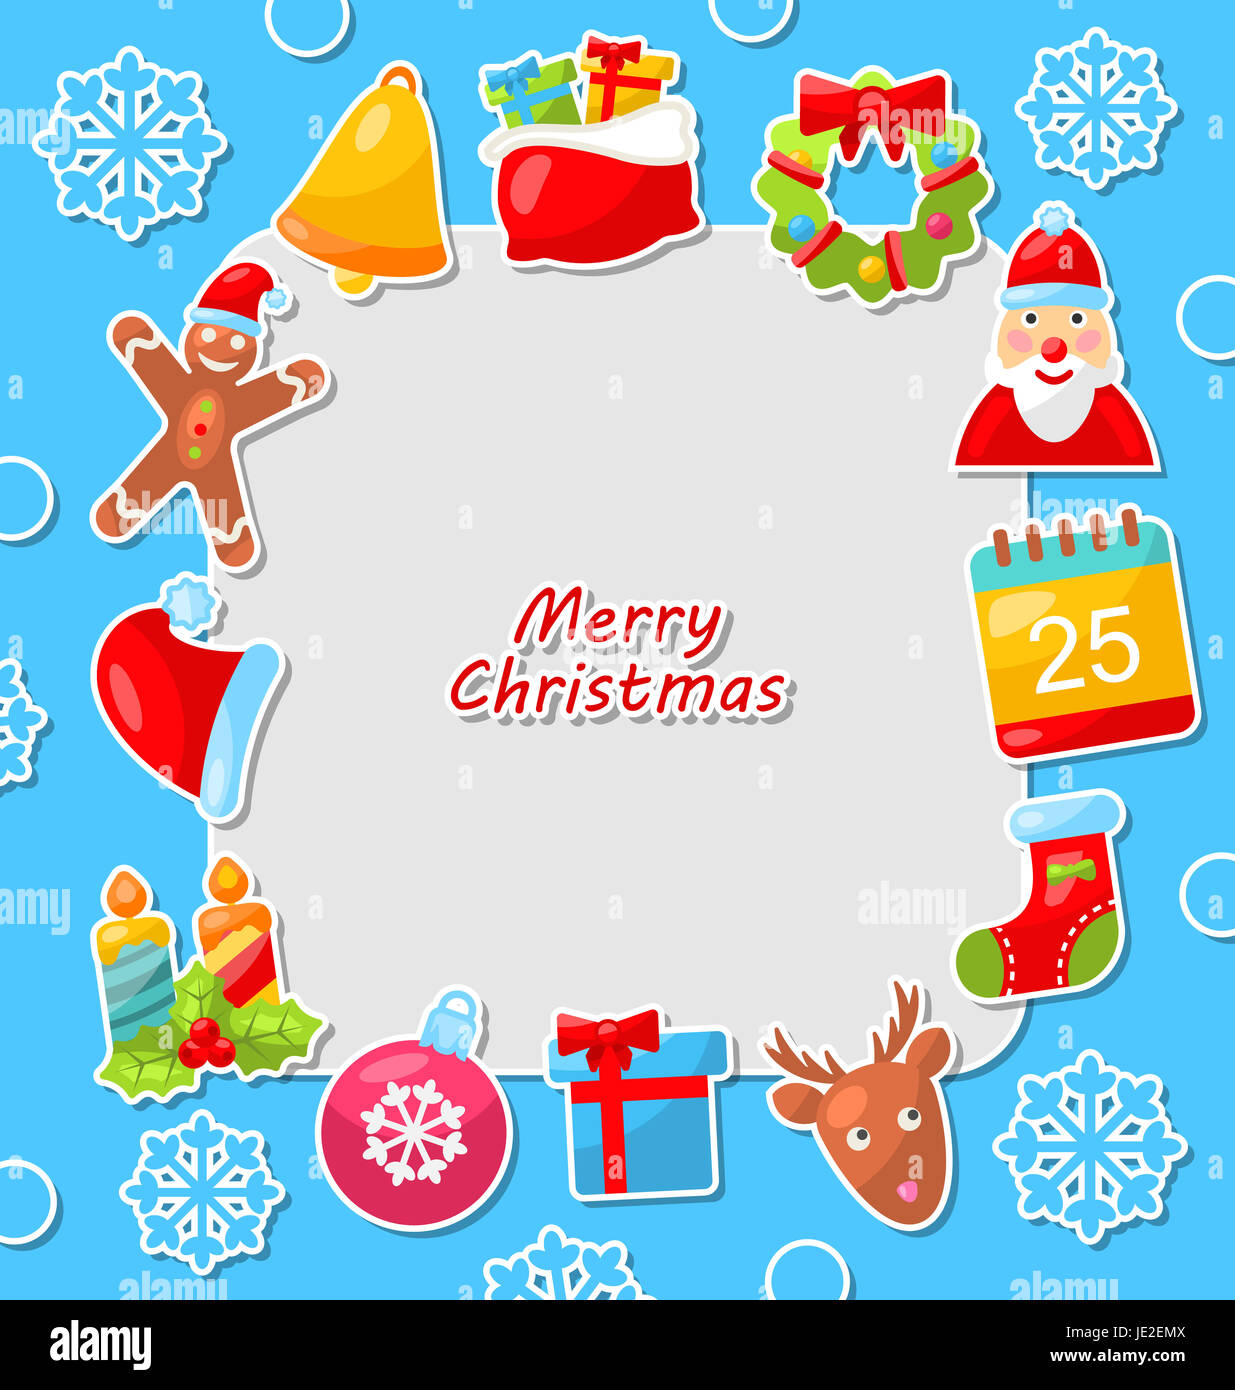 Illustration Merry Christmas Celebration Card with Traditional Elements - Stock Photo